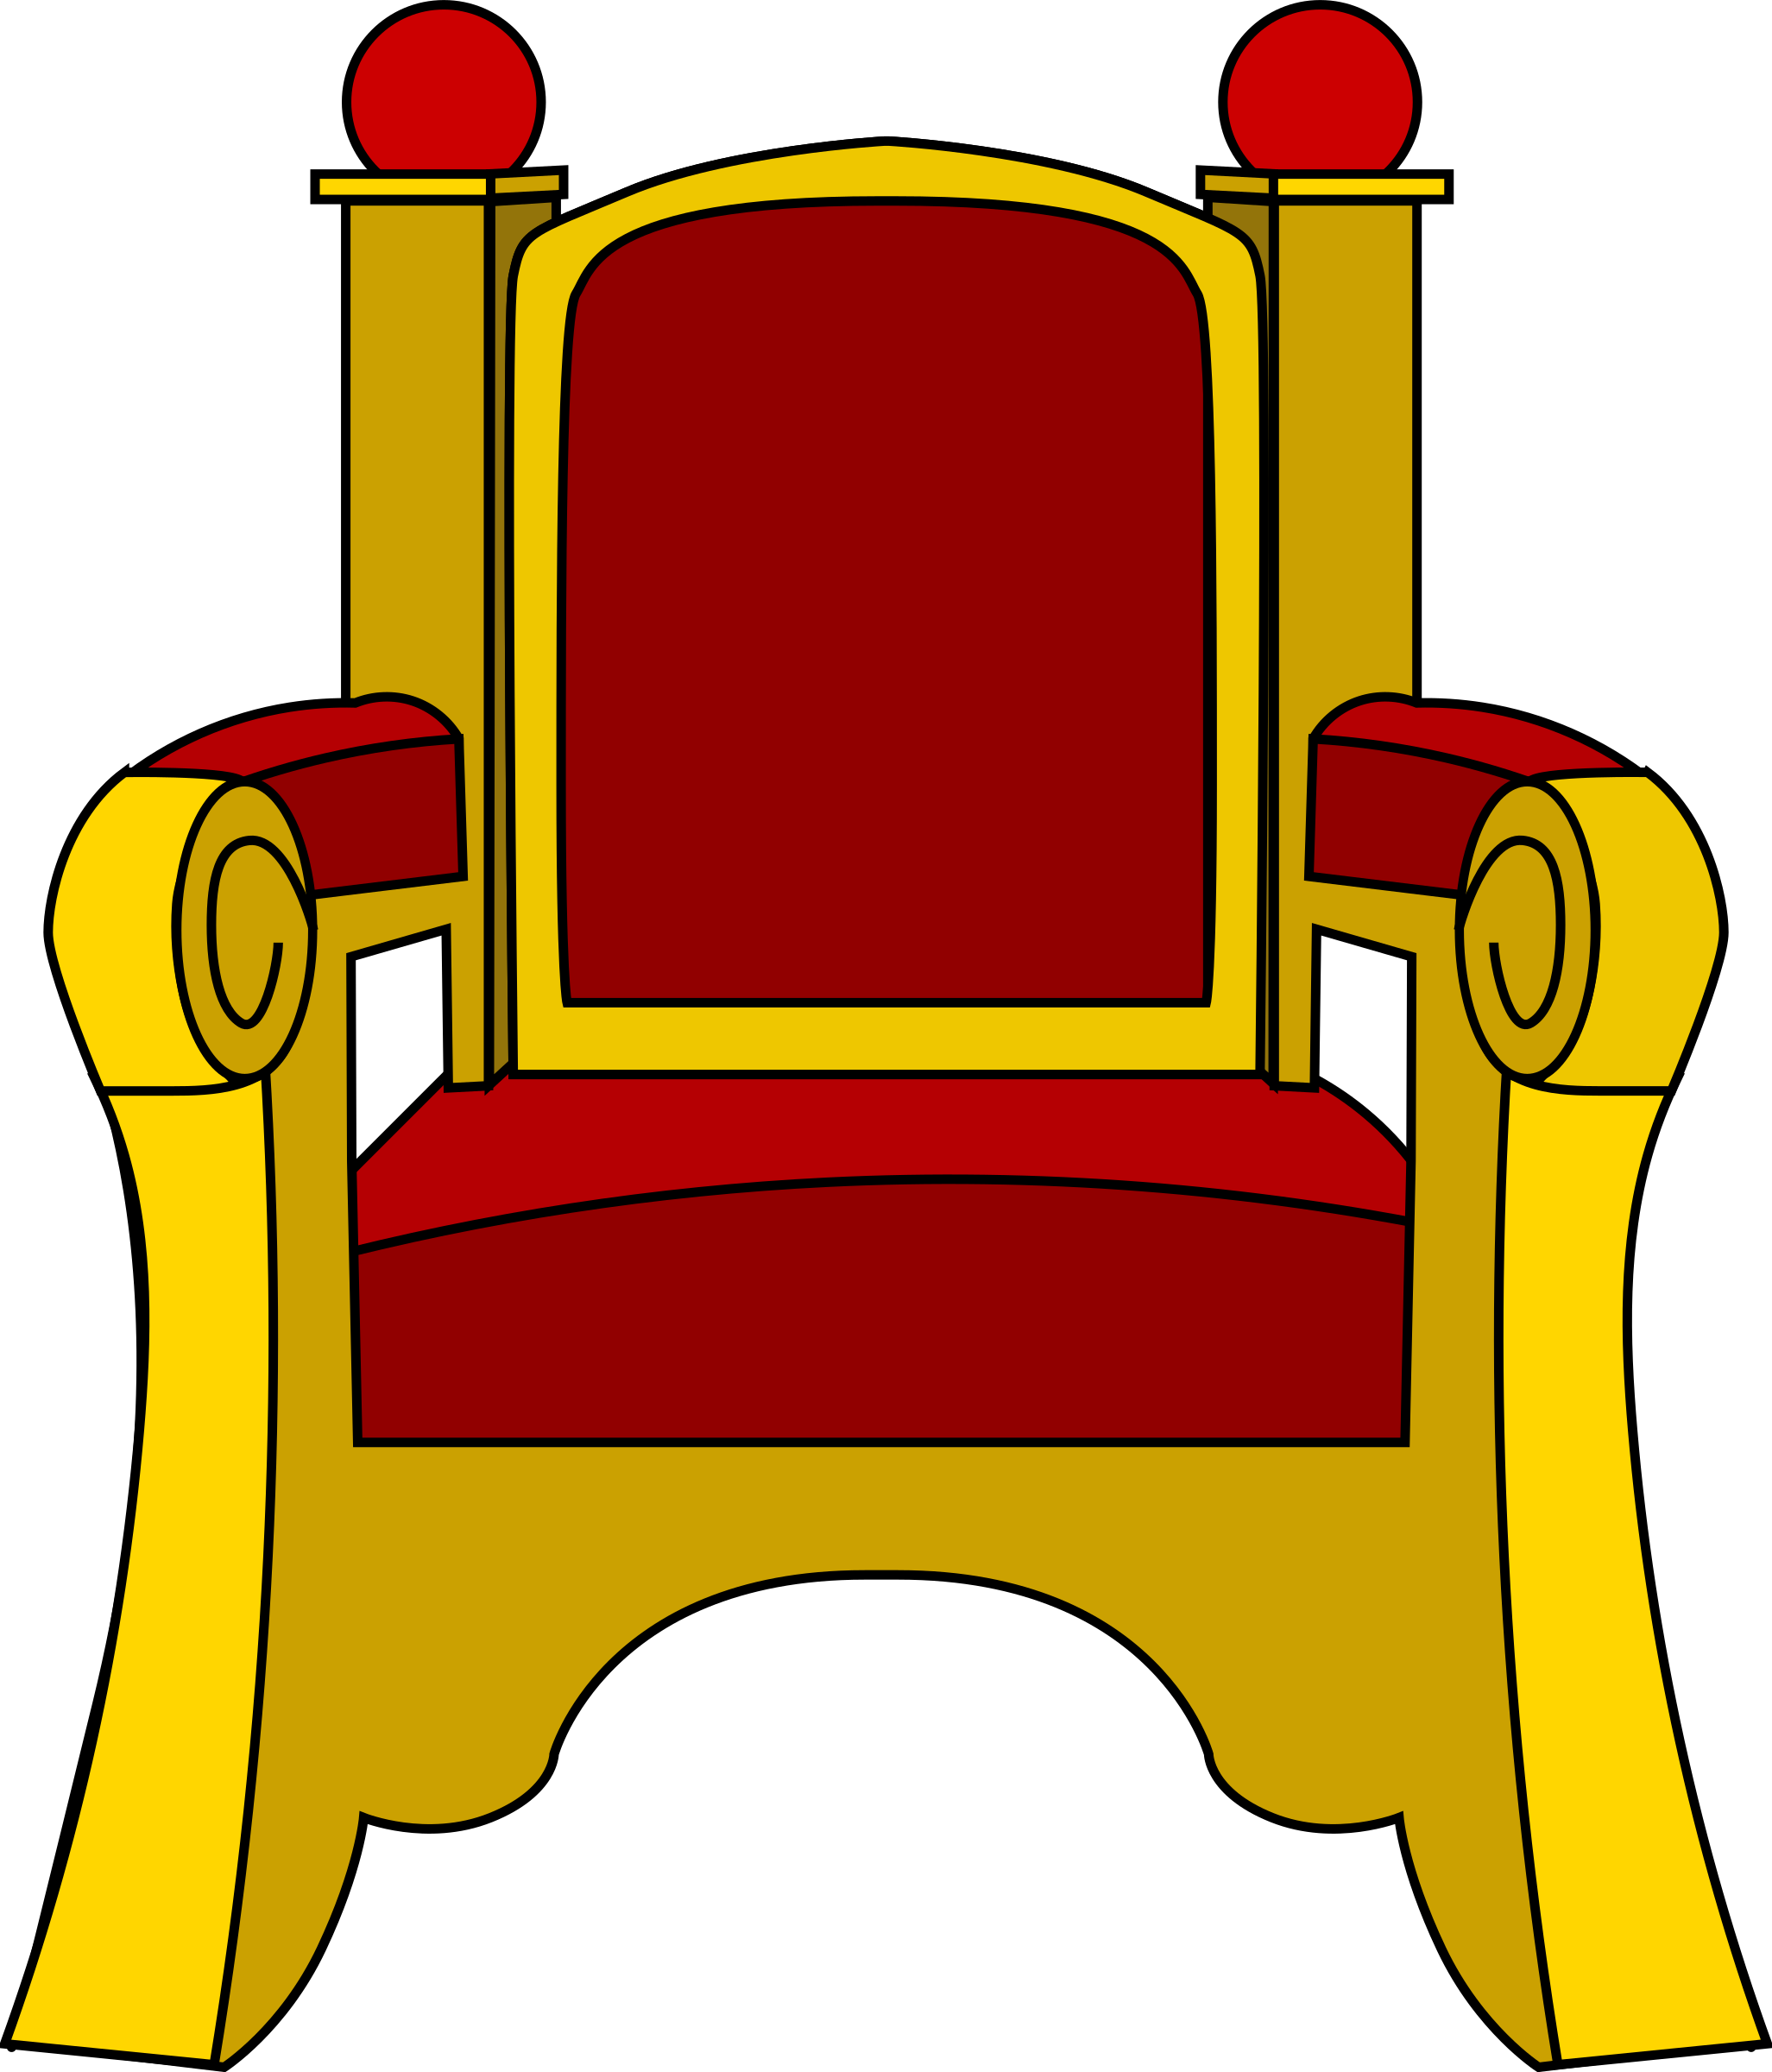 Kings Throne Drawing King on Throne Clip Art